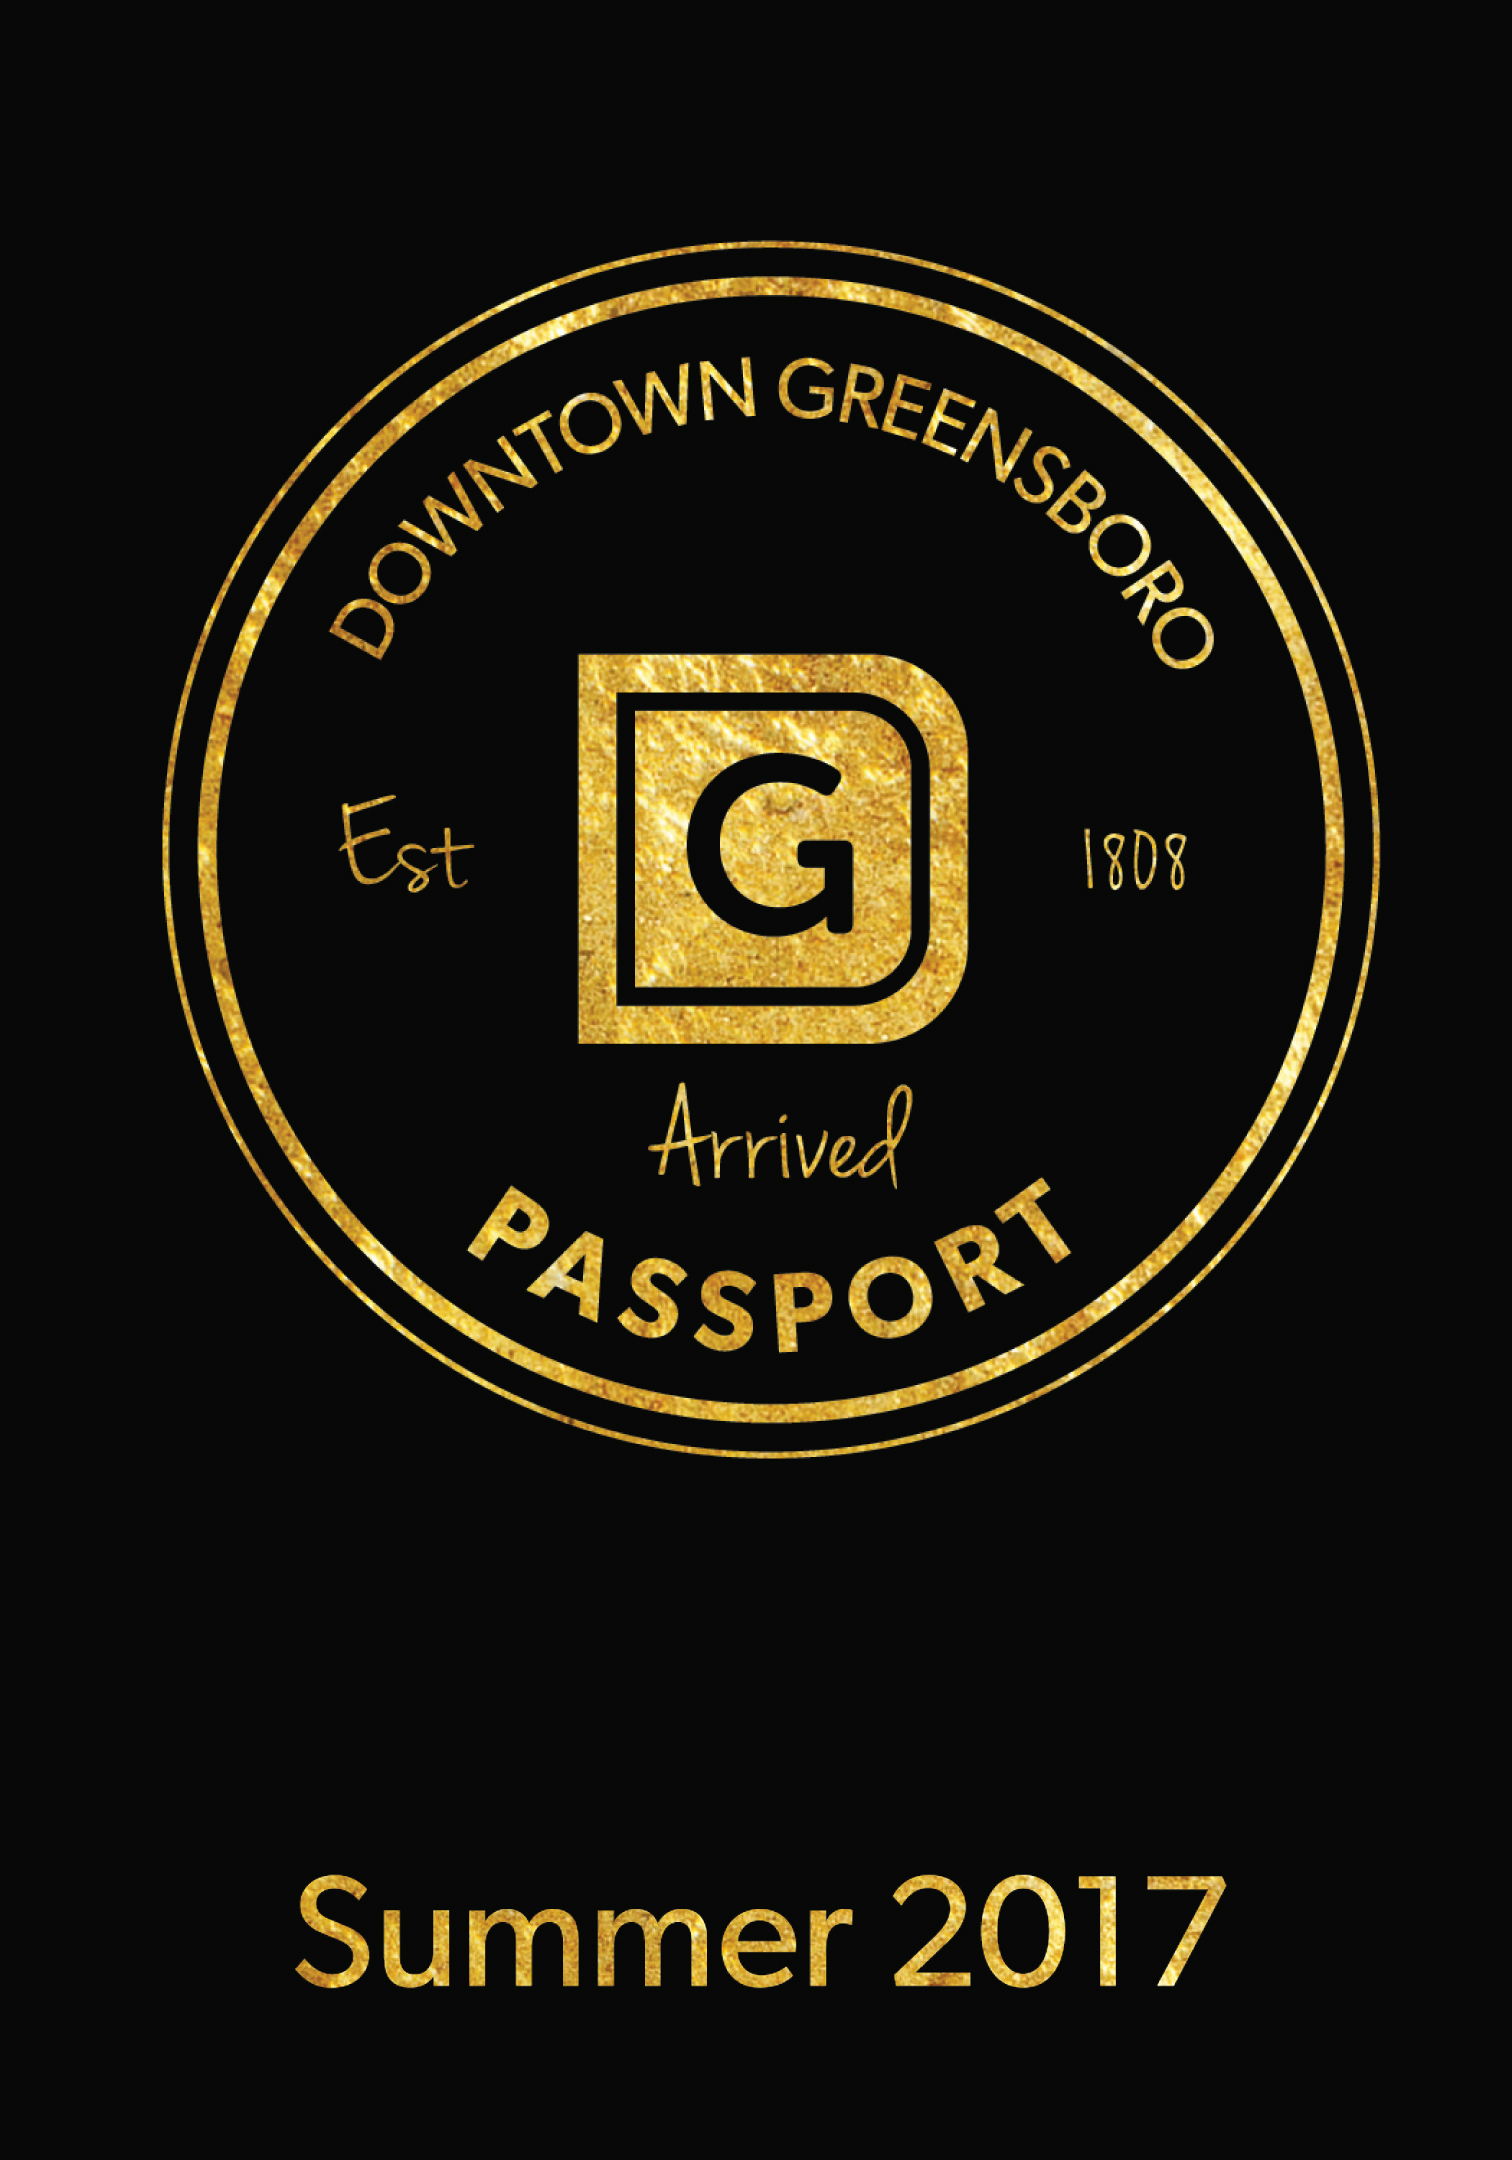 passport-cover-black.jpg